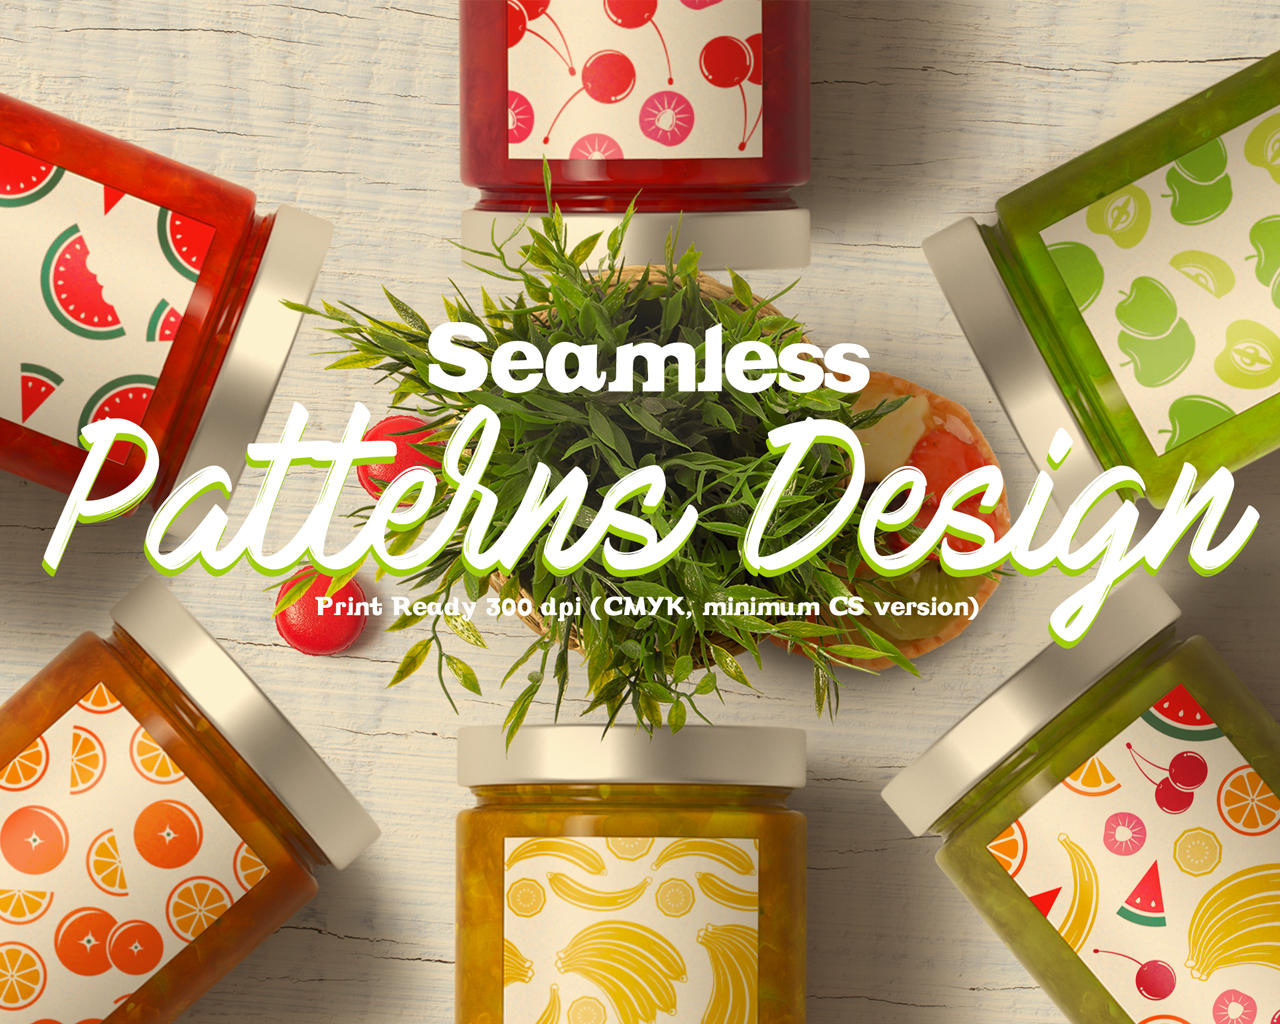 Seamless Patterns Design by Wutip - 102449